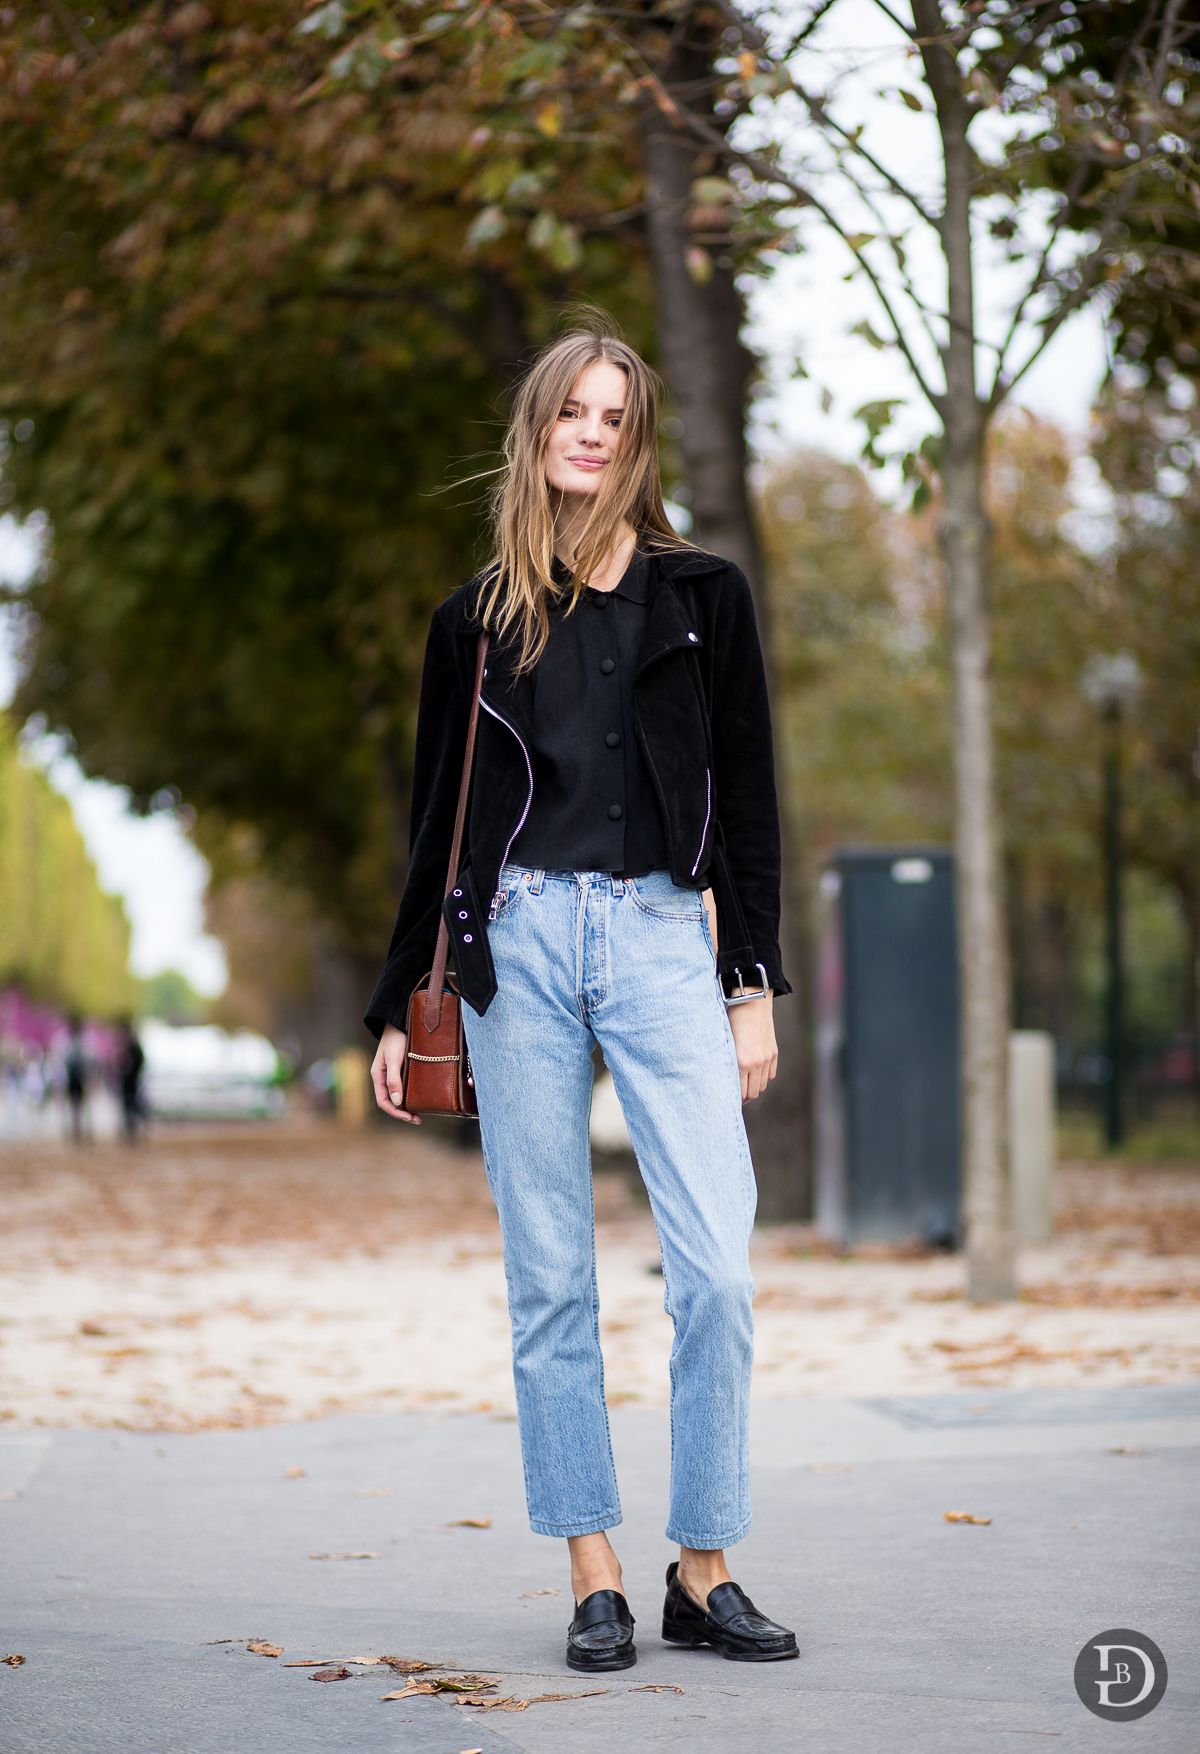 Black Leather Jacket with a black tee and high-rise relaxed jeans.